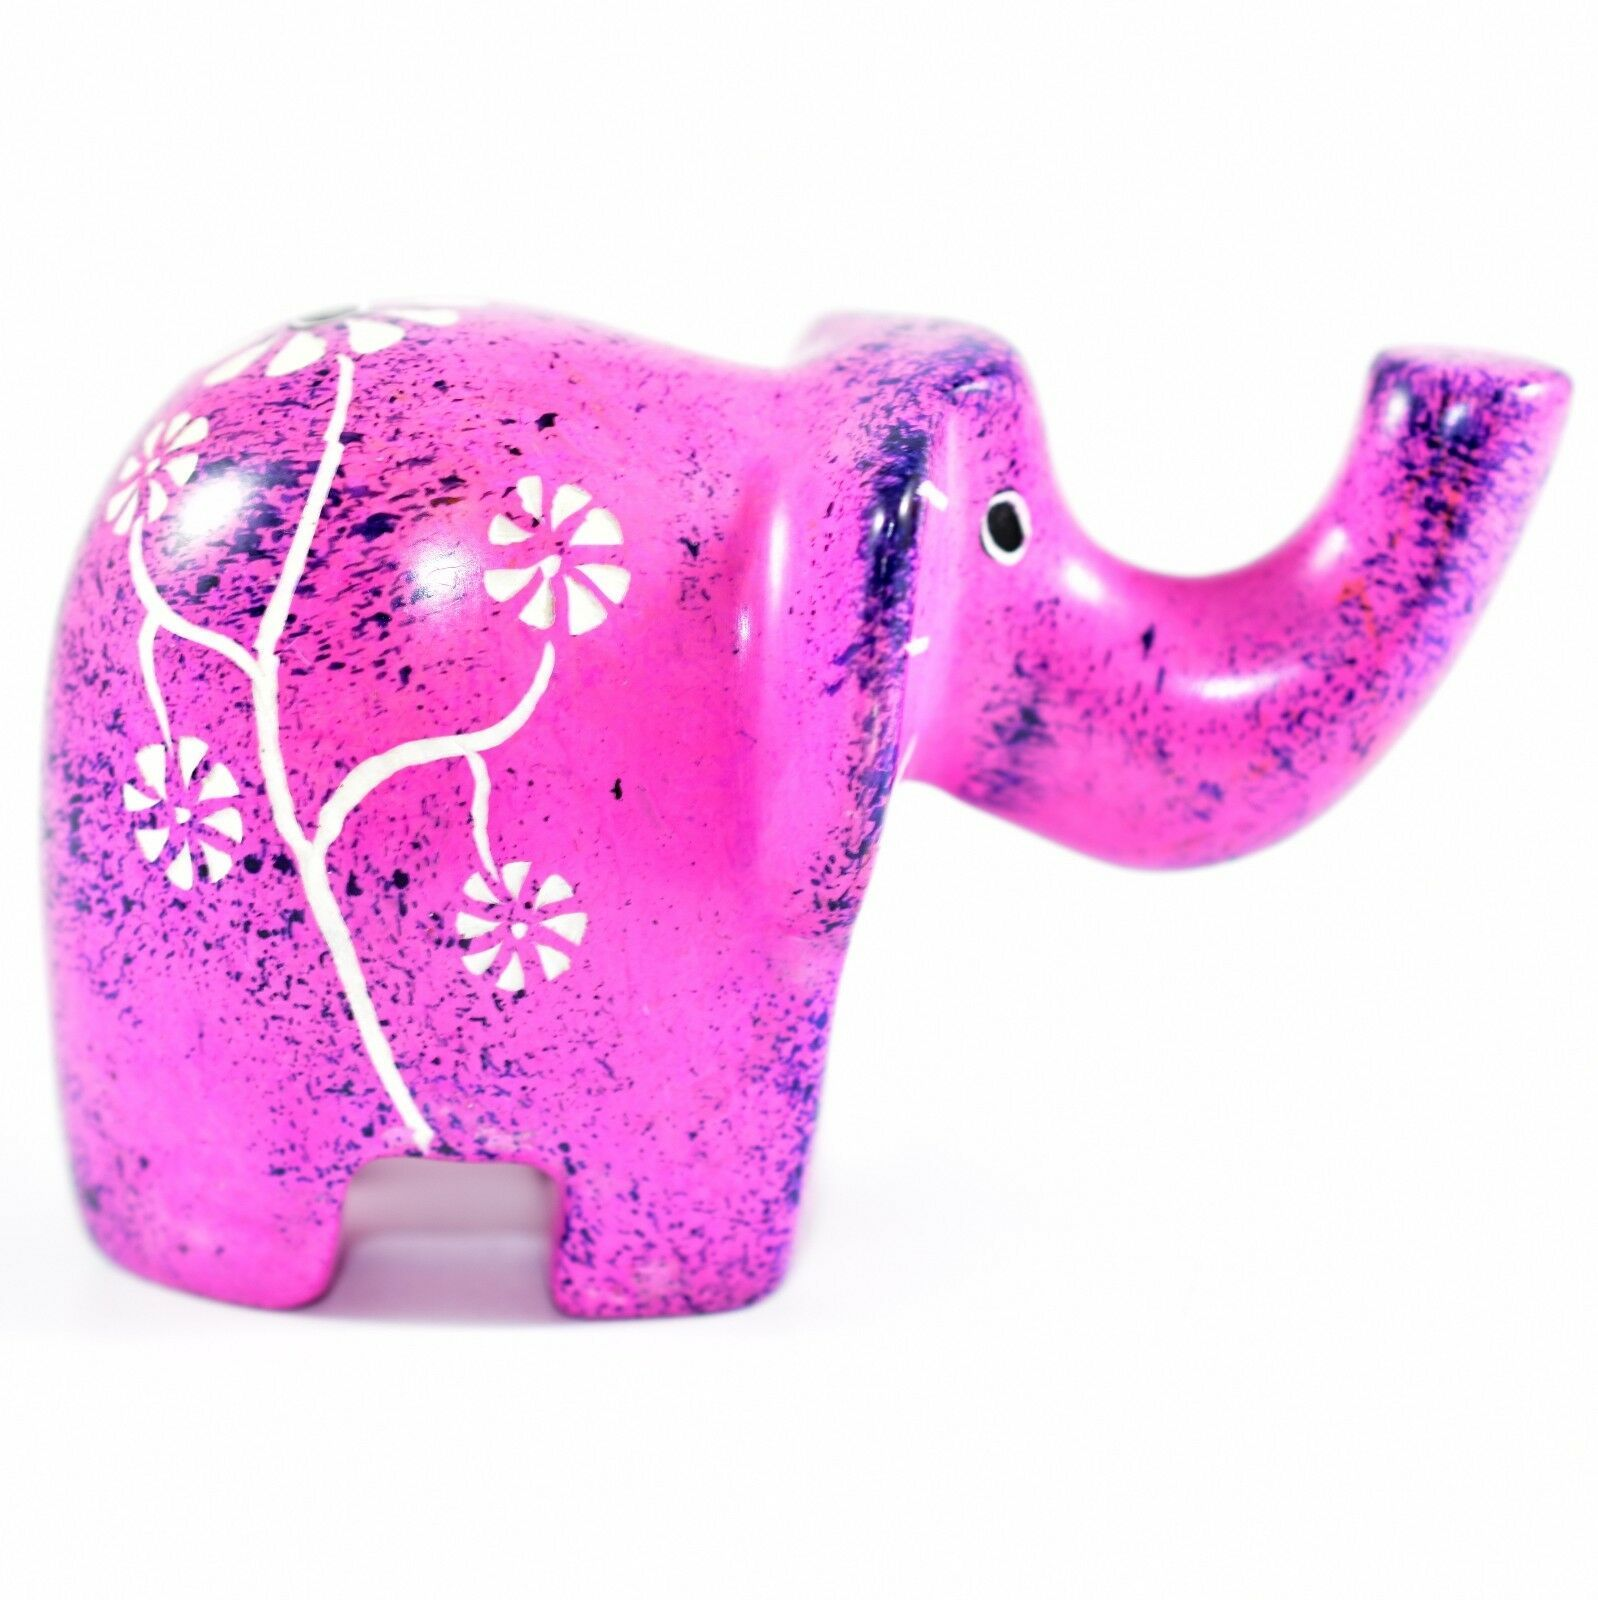 SMOLArt Hand Carved Soapstone Pink Purple Floral Elephant Figurine Made Kenya